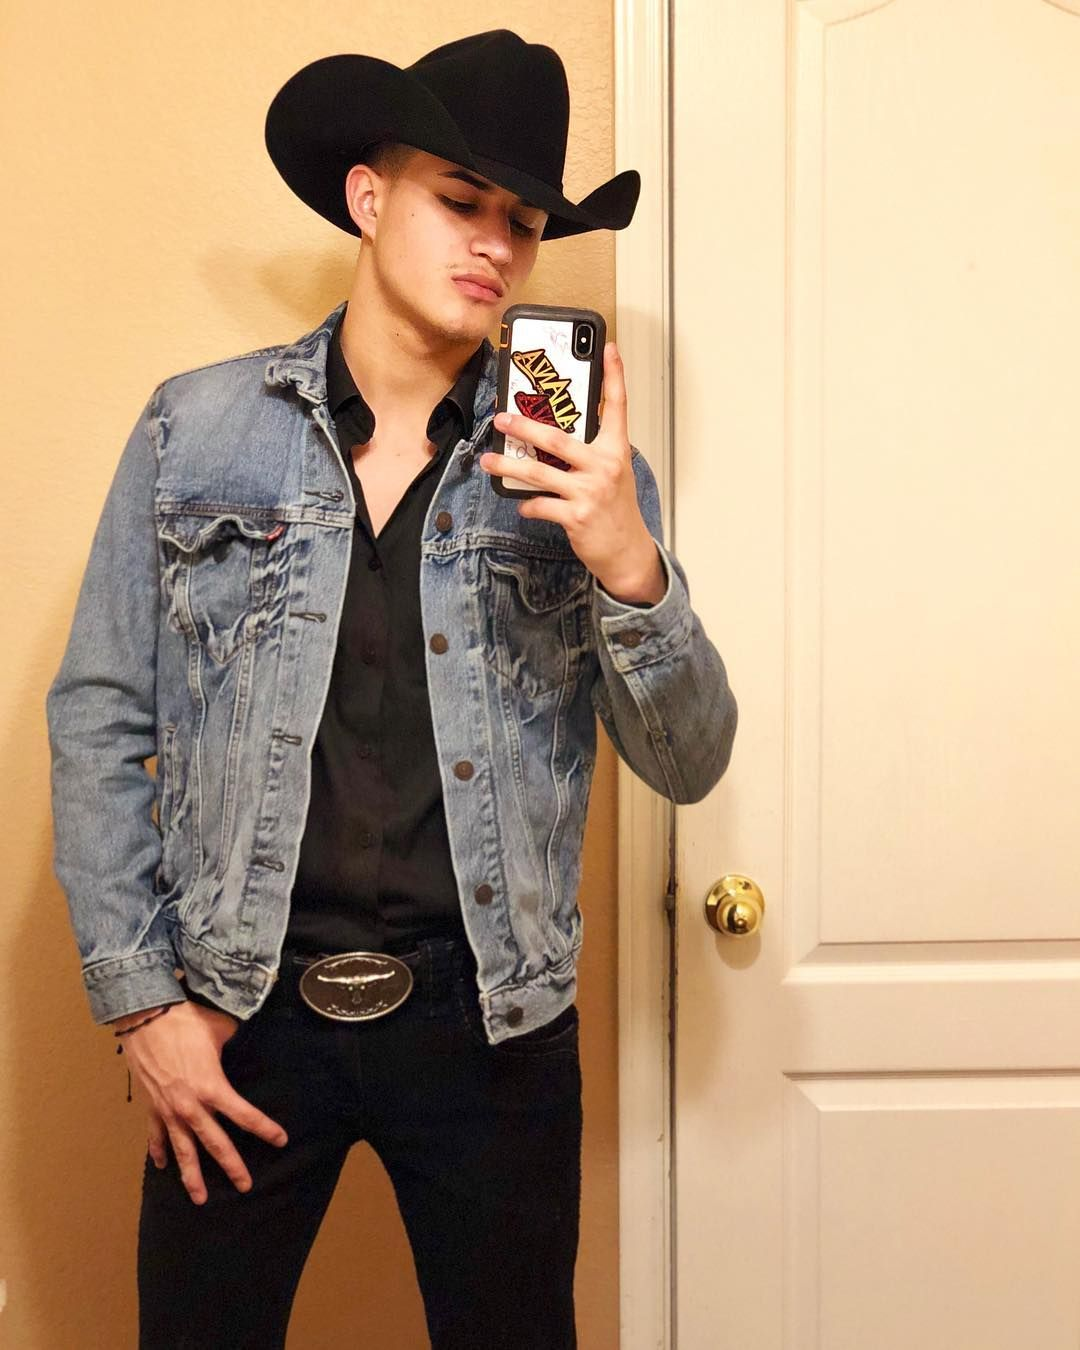 Pin By Ruth On Takuaches Cowboy Outfit For Men Cowboy Outfits Mexican Outfit